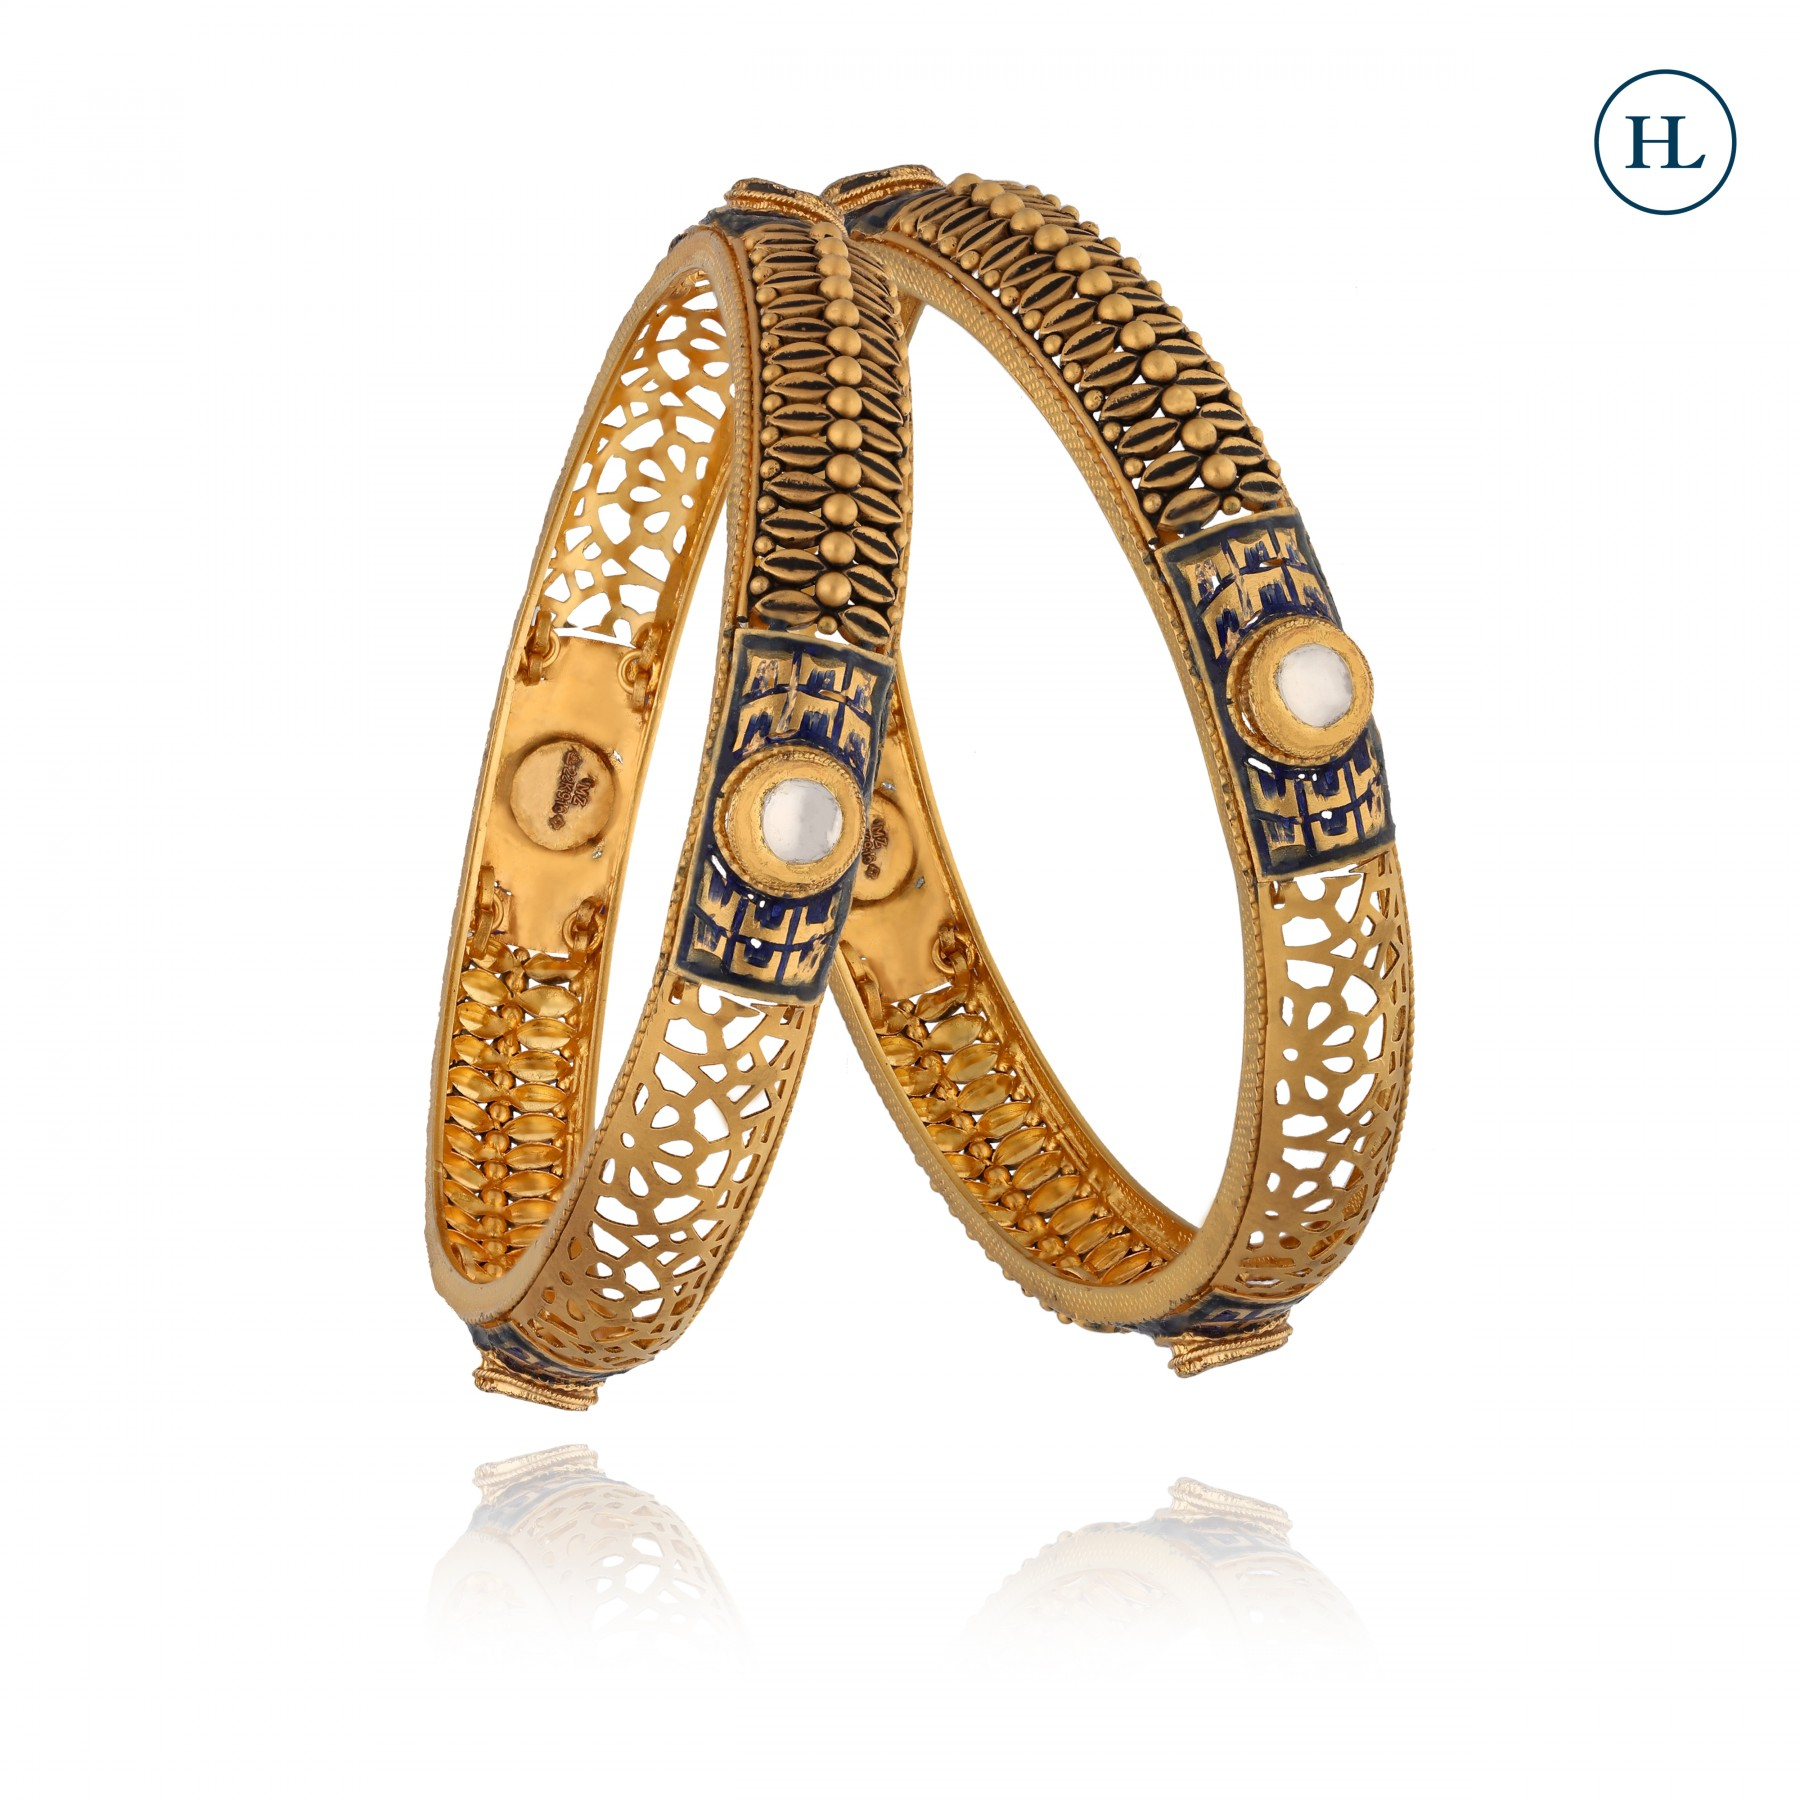 Antique-Styled Gold Bangles